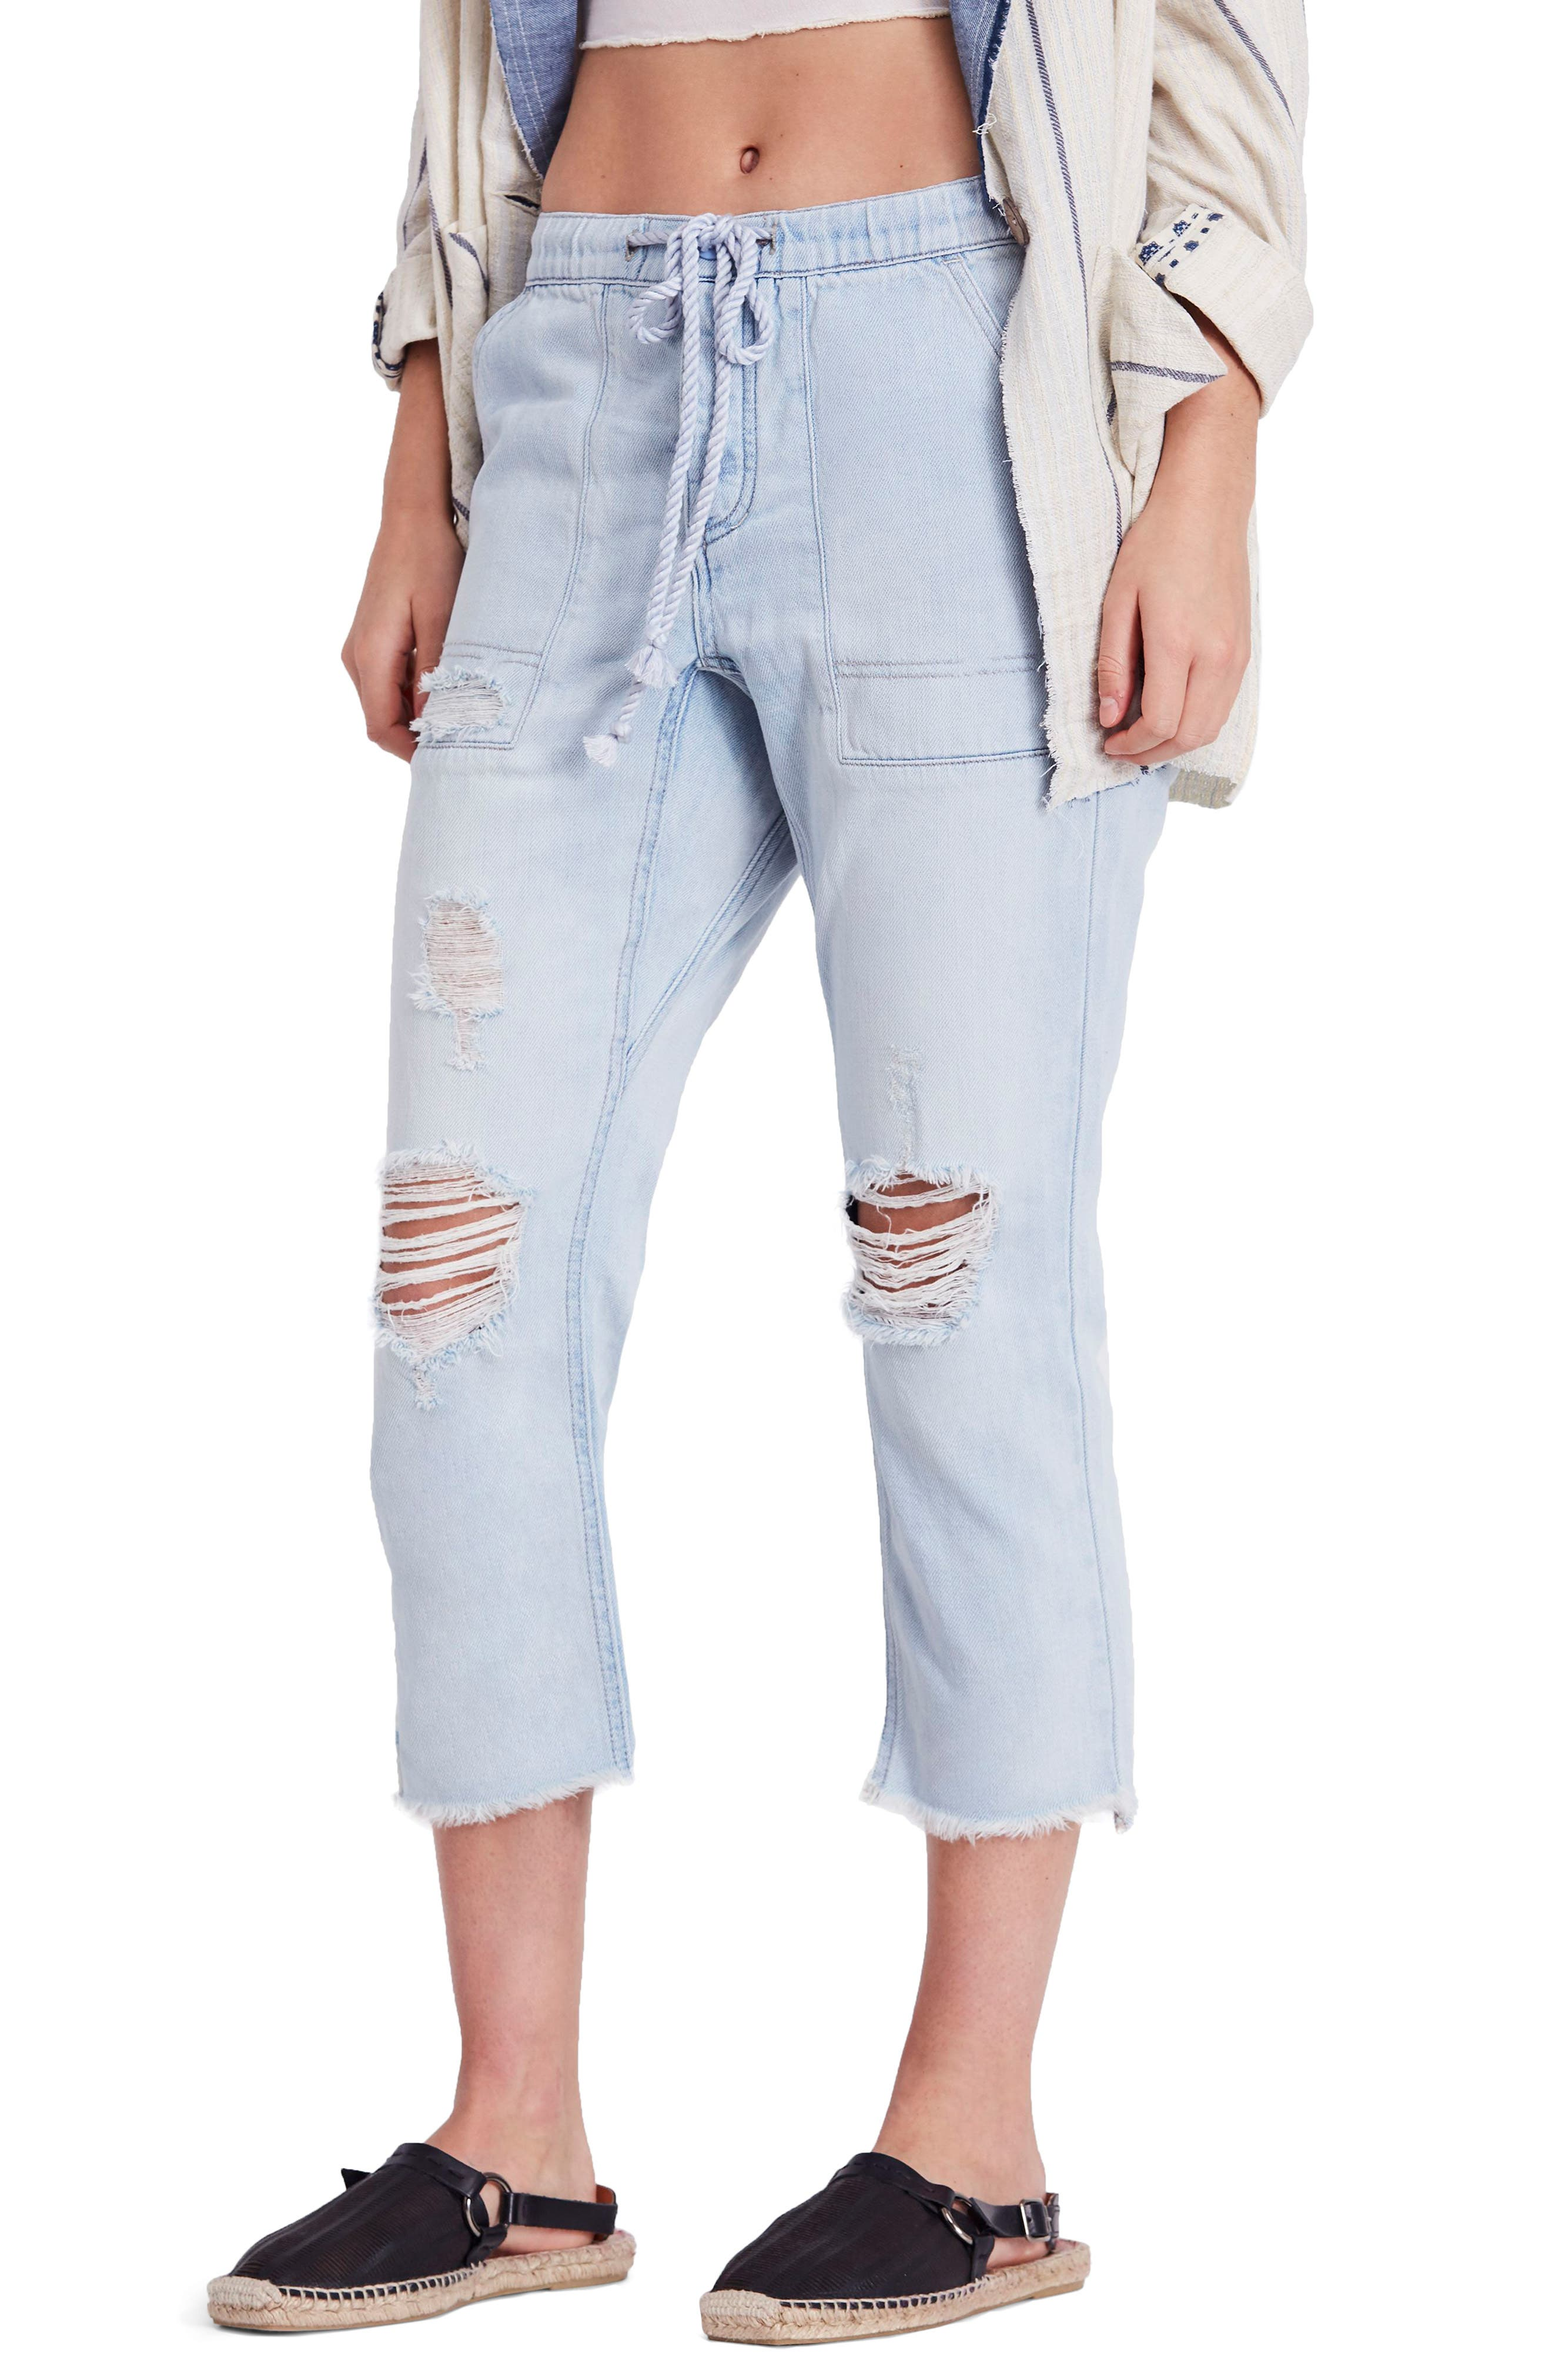 Northern Sky Ripped Crop Jeans,                         Main,                         color, Blue